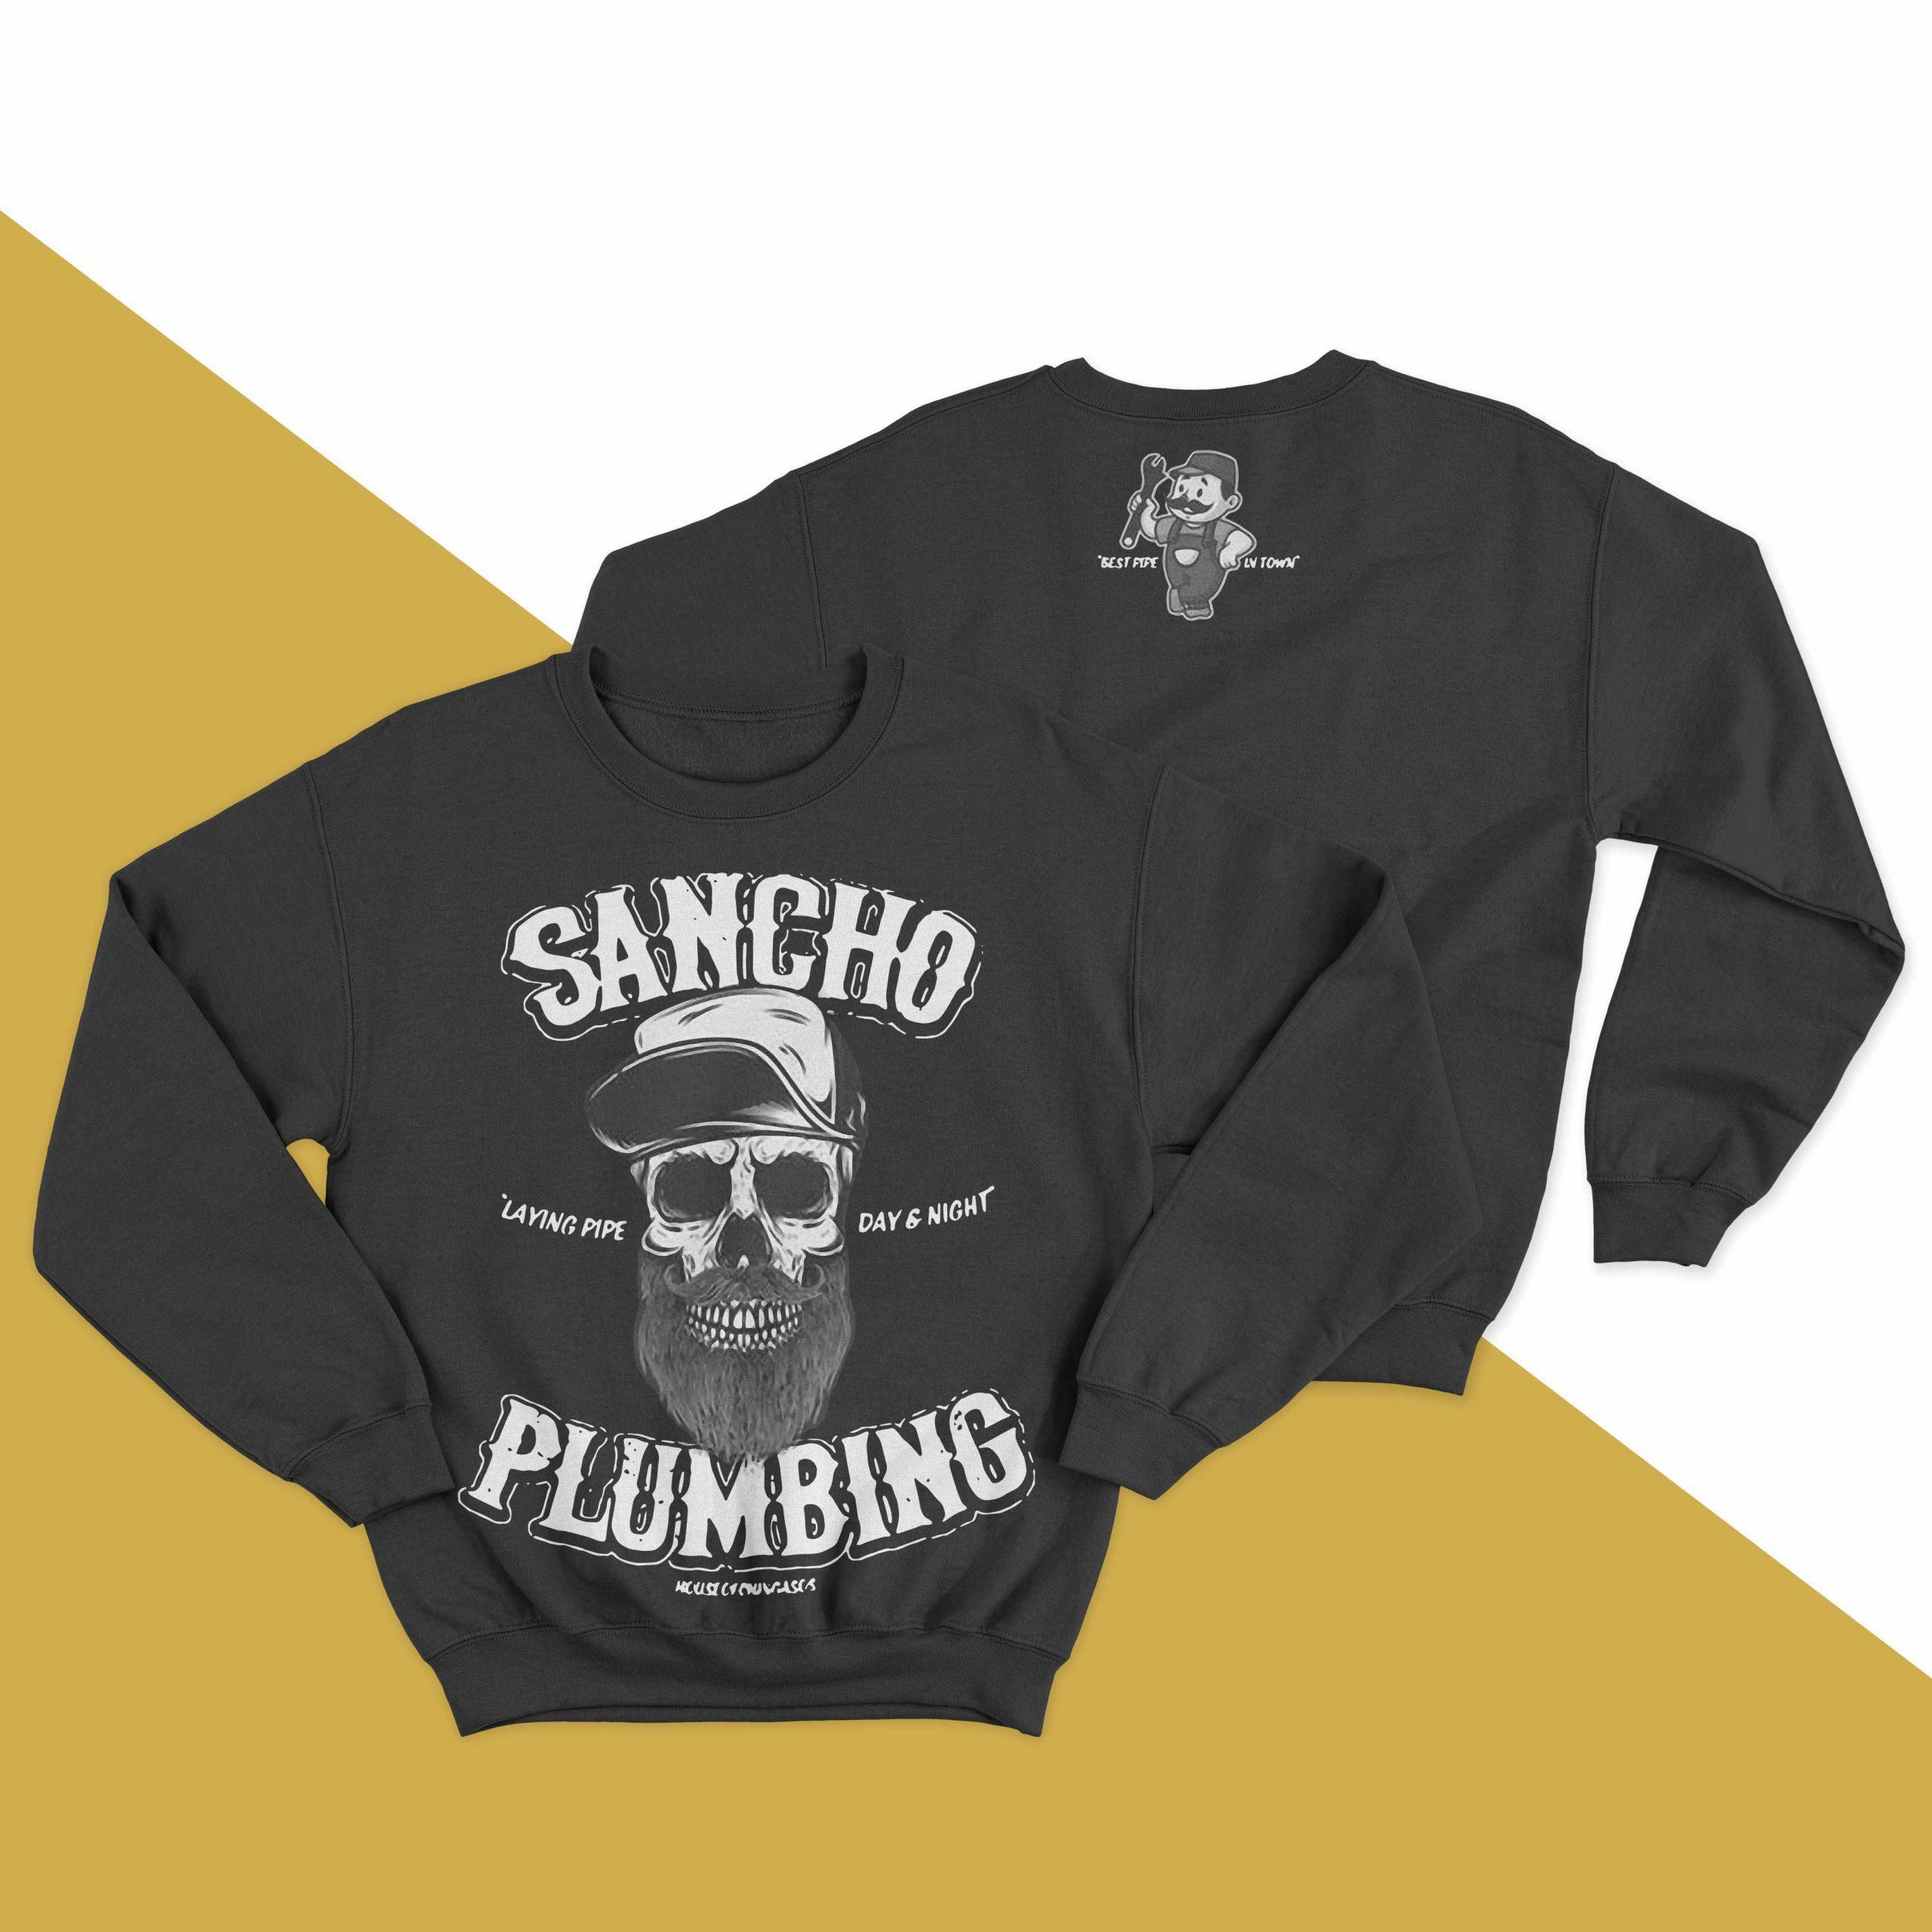 Sancho Plumbing Laying Pipe Day And Night Tank Top